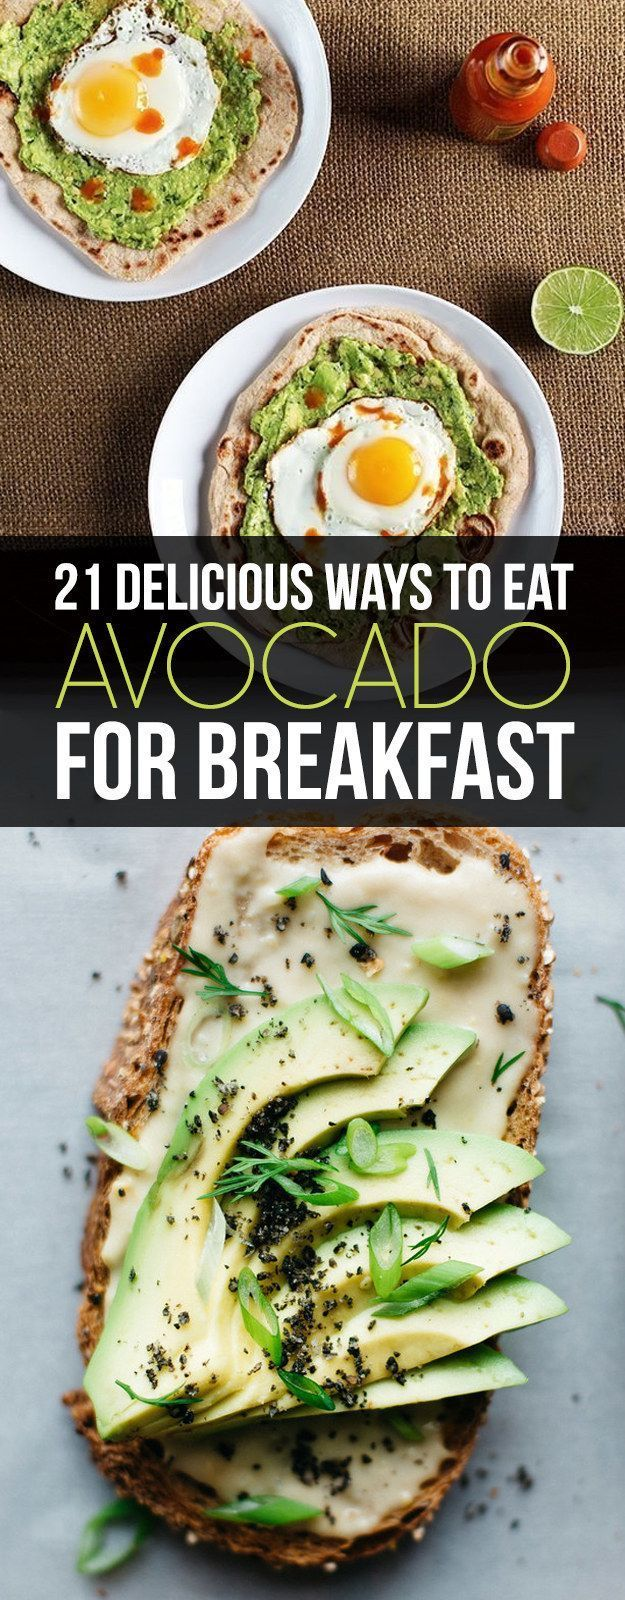 21 Delicious Ways To Eat Avocado For Breakfast from @buzzfeedfood